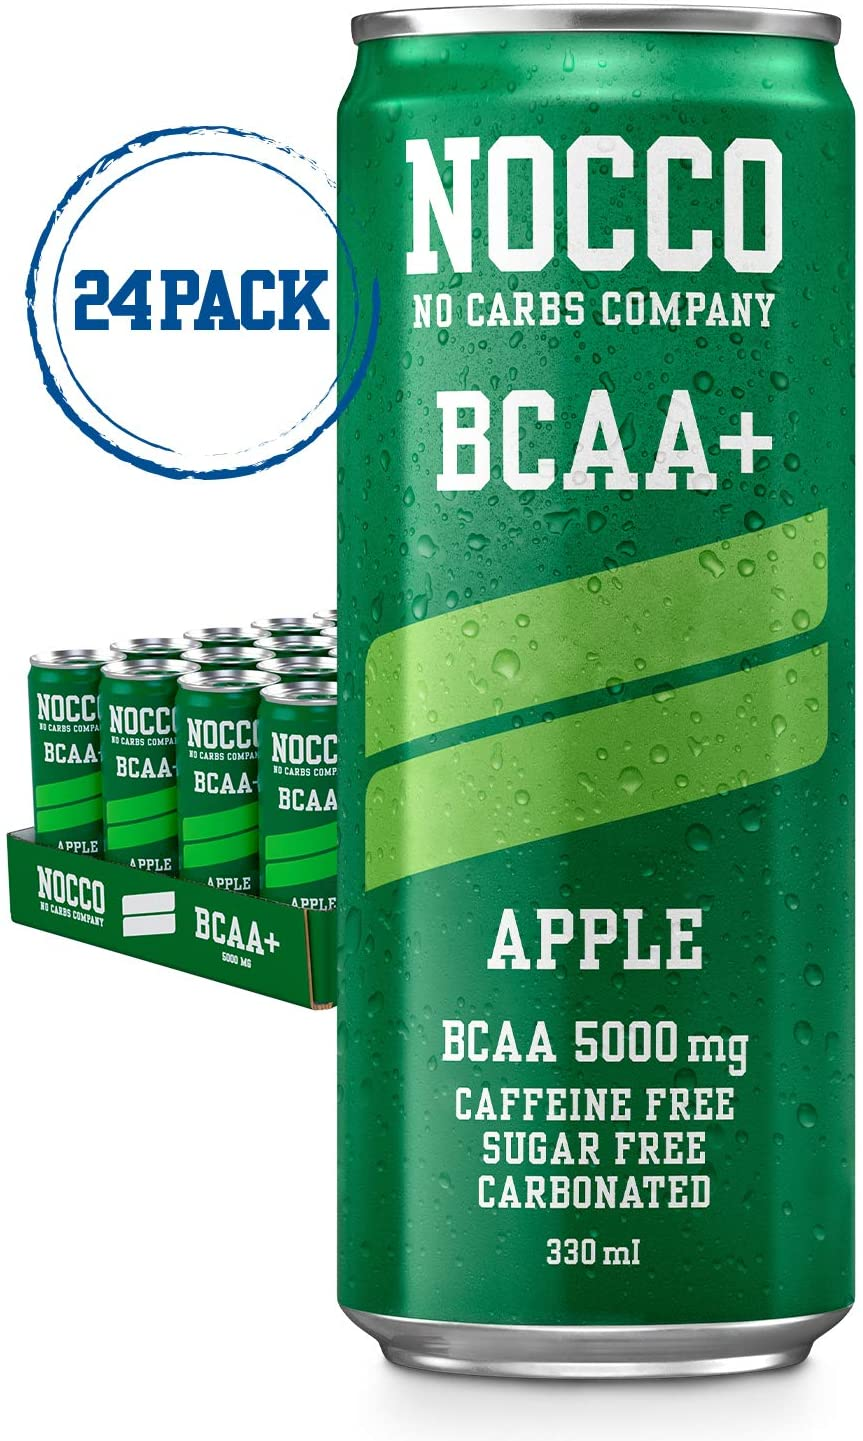 NOCCO BCAA+ – Pack of 24x330ml